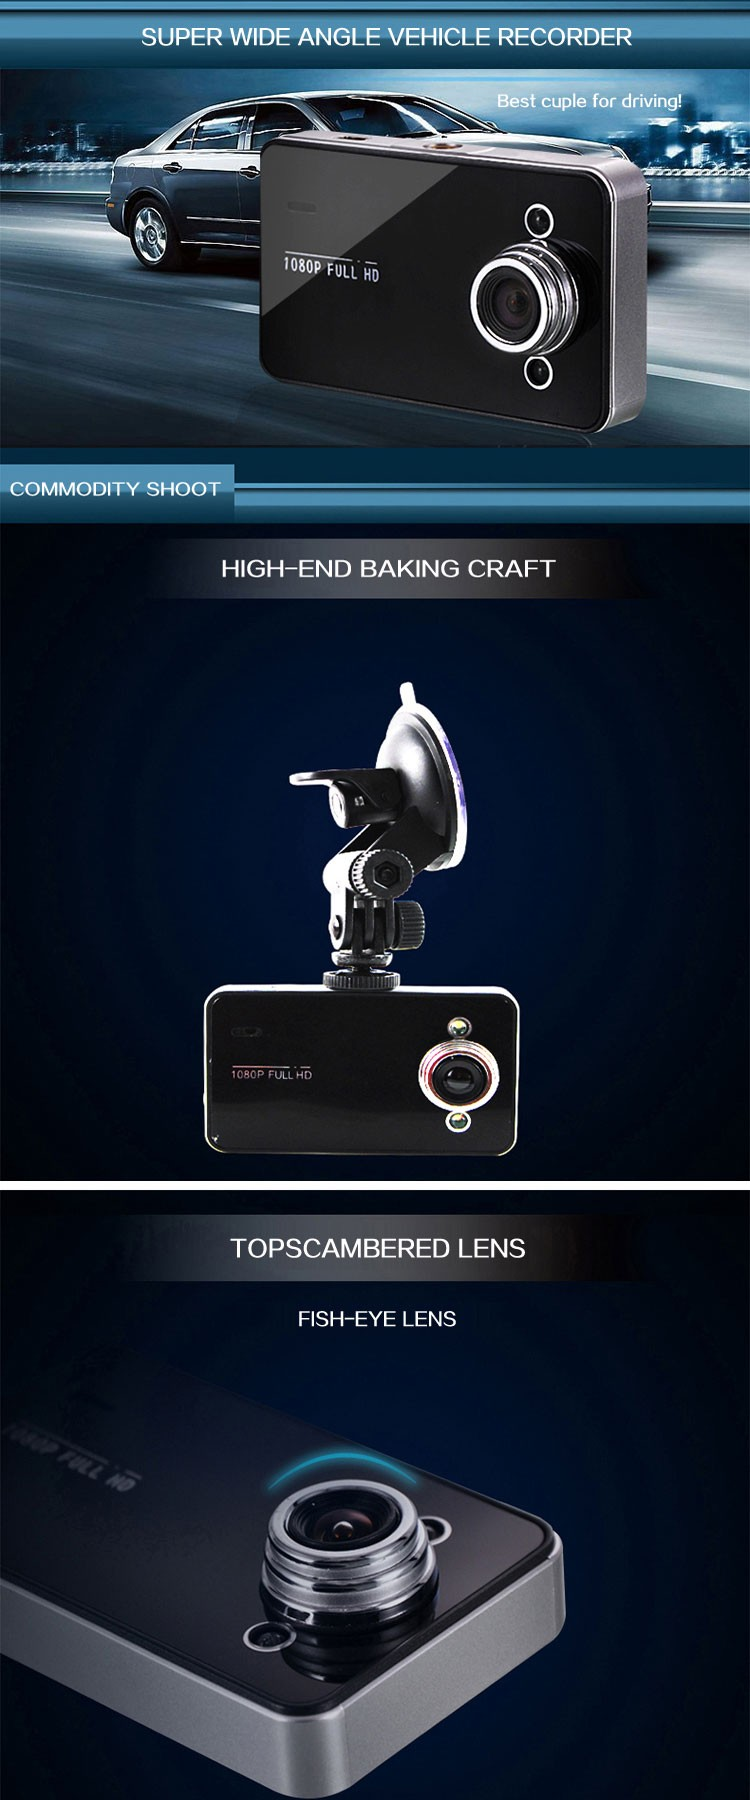 K6000 General Plus VGA chipset camera len OV7670. 30W pixels car camera. Angle of view 120 degrees car DVR